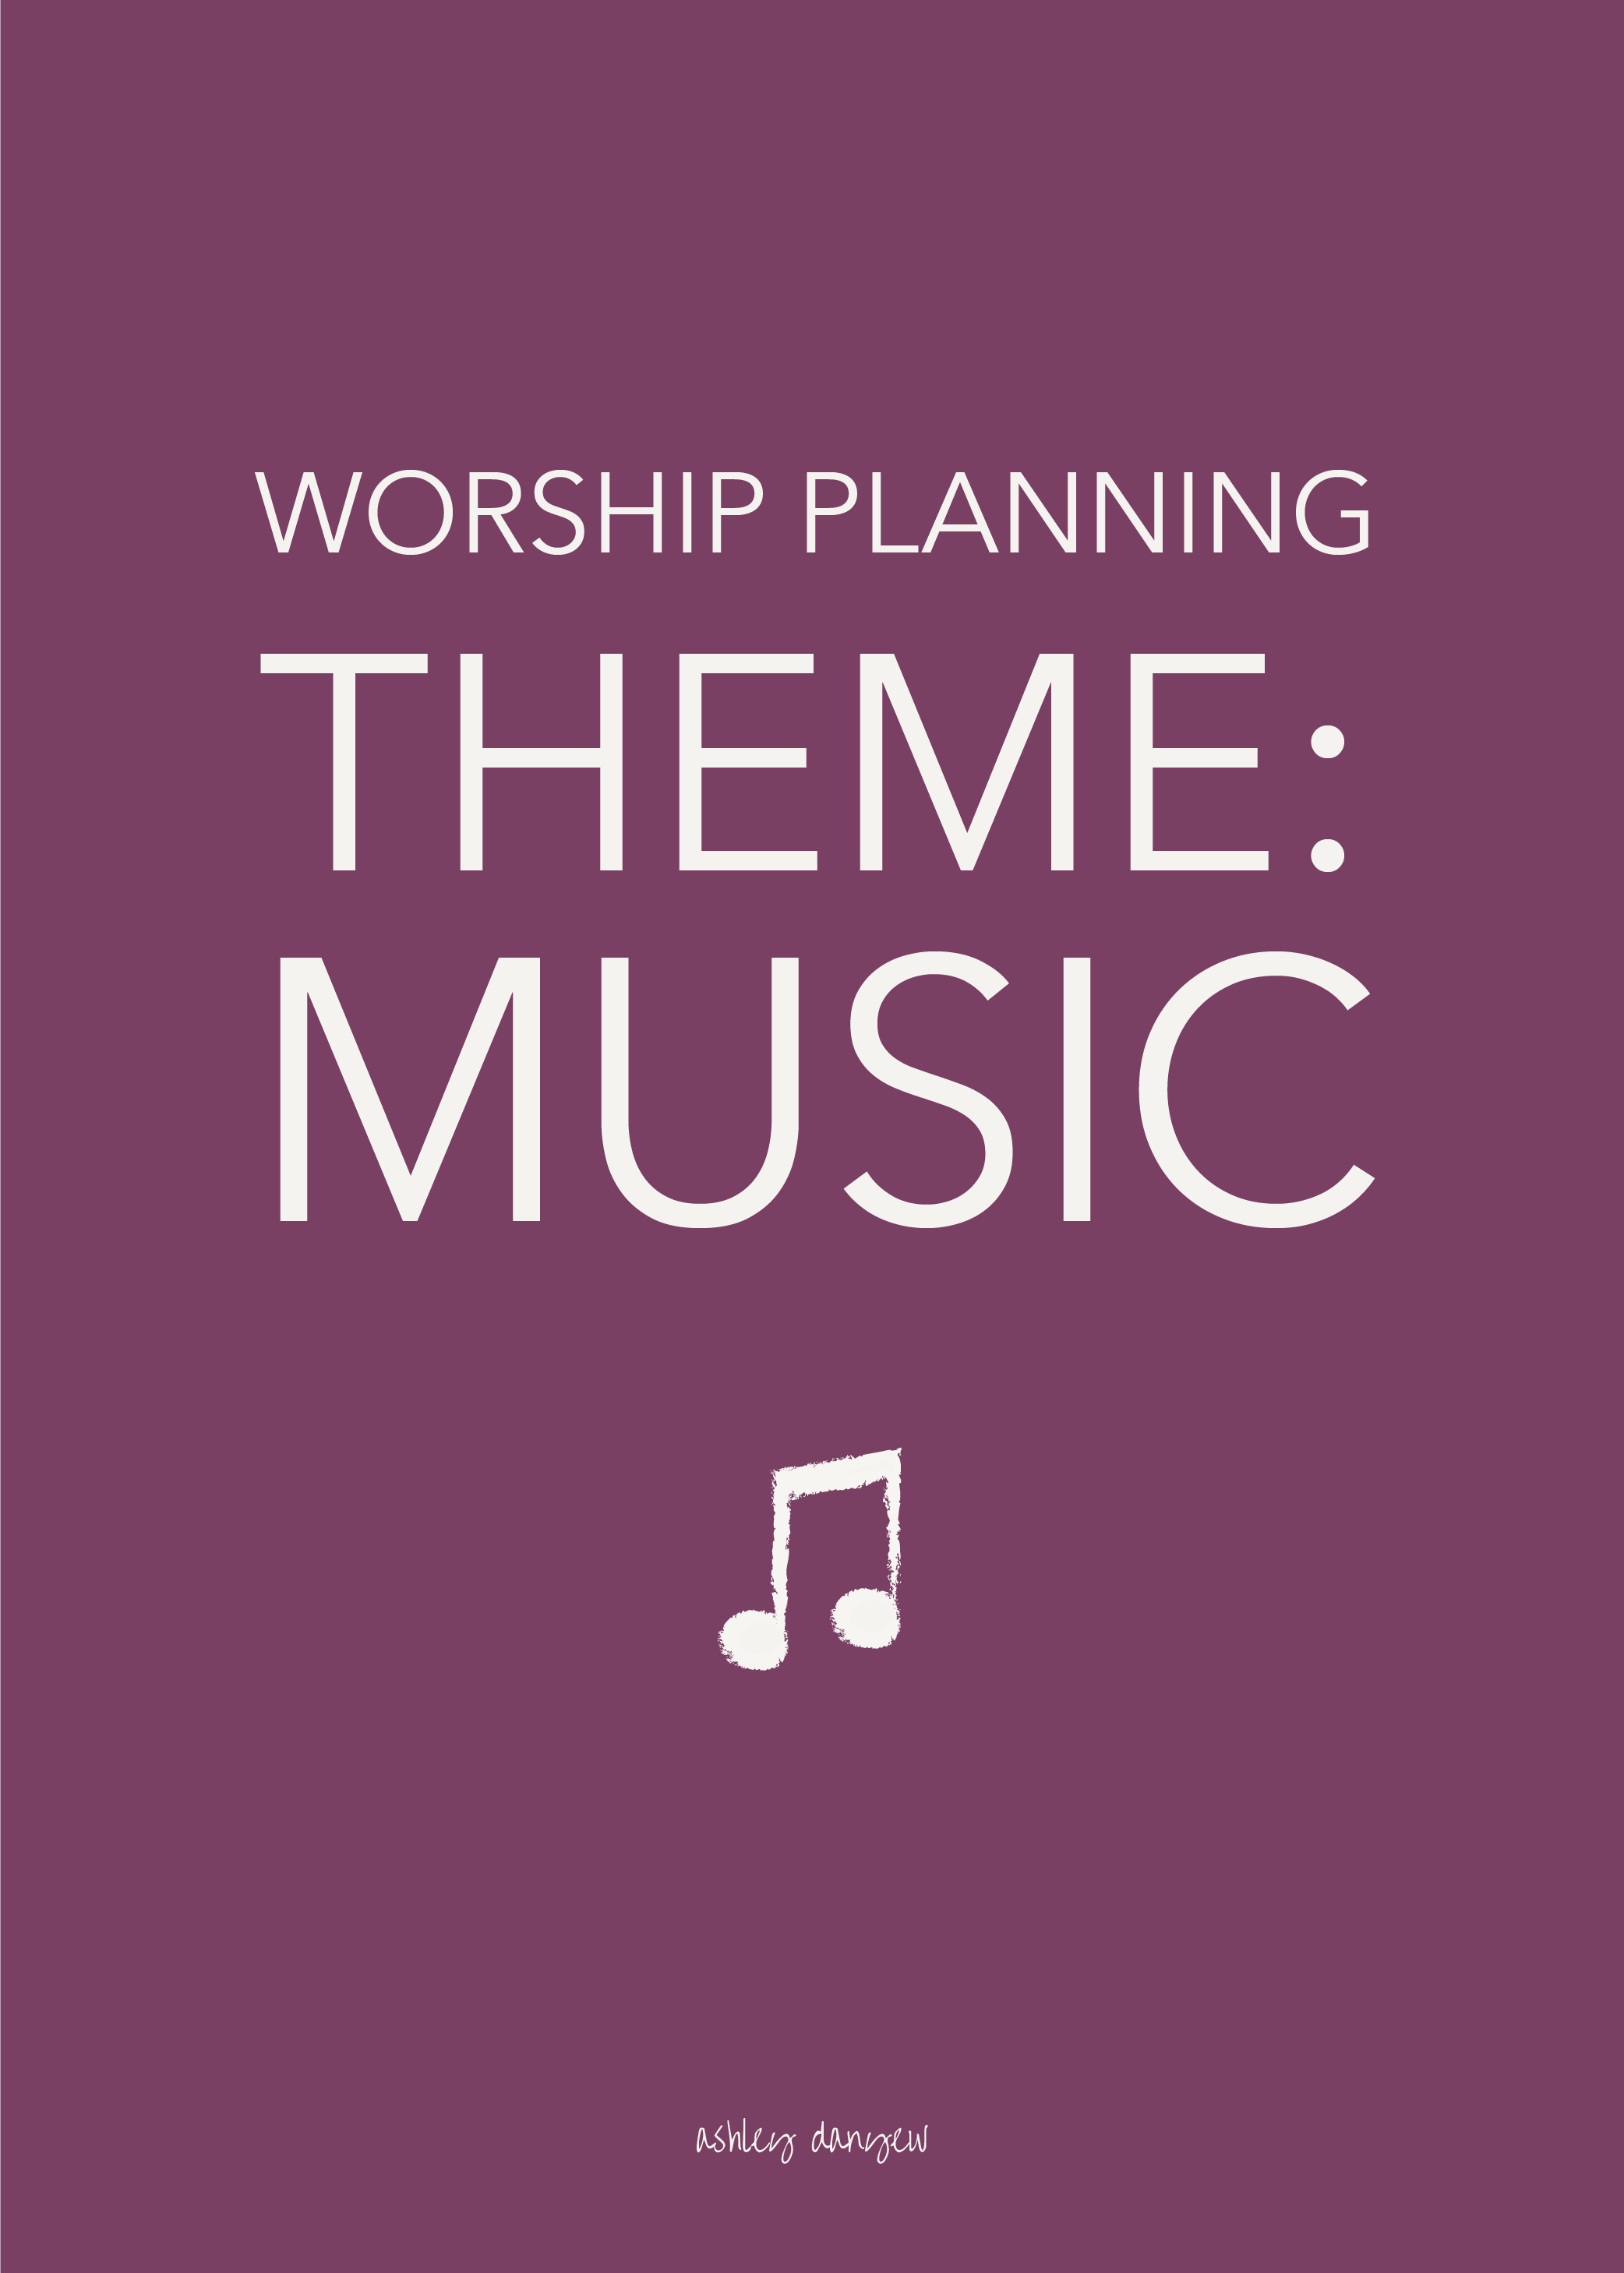 Copy of Worship Planning Theme: Music